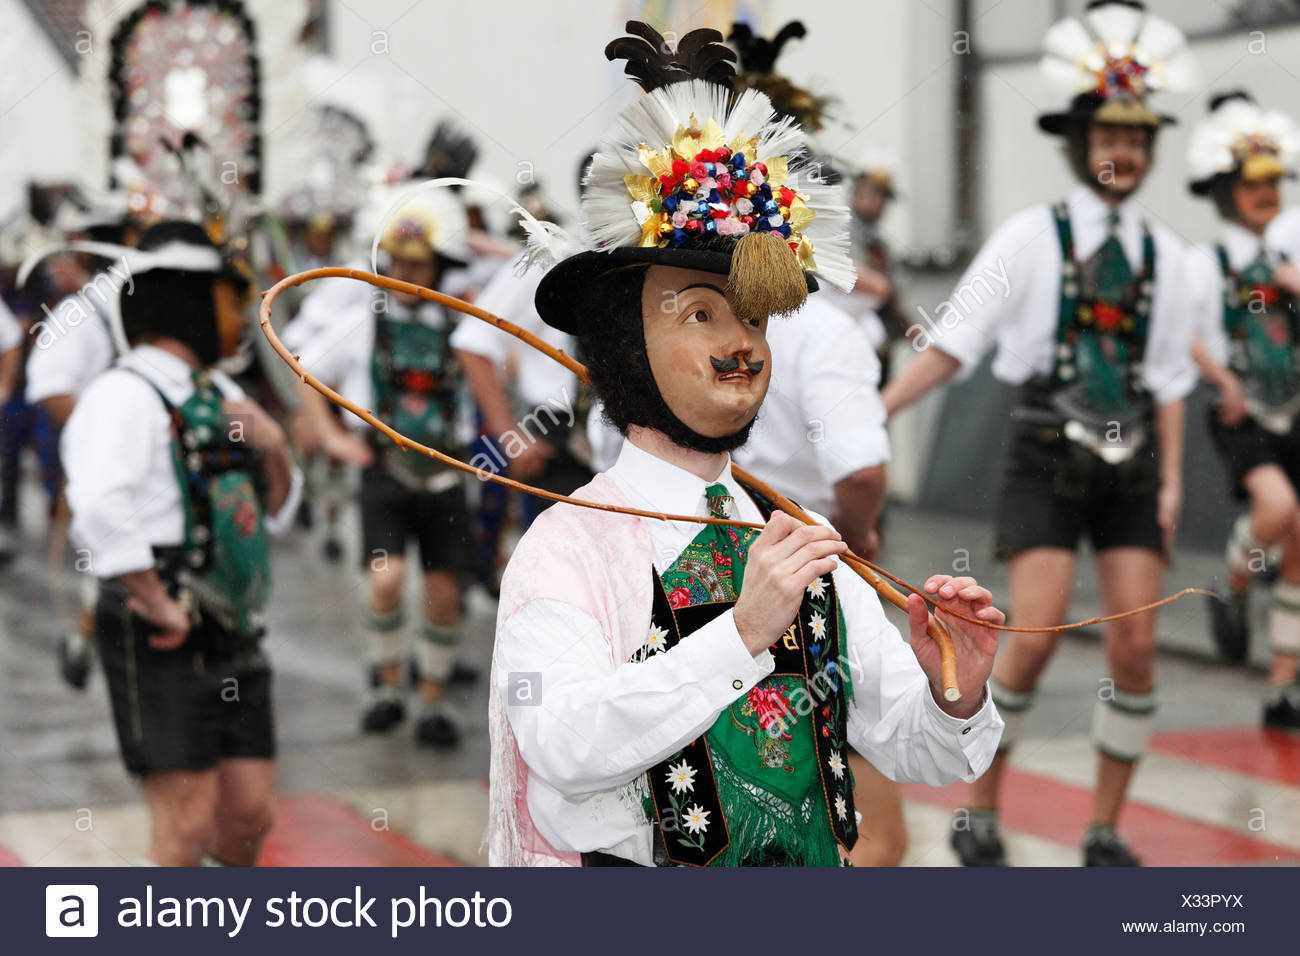 Mullerlaufen dans parade 80331 München, tradition du carnaval, Tyrol, Autriche Photo Stock